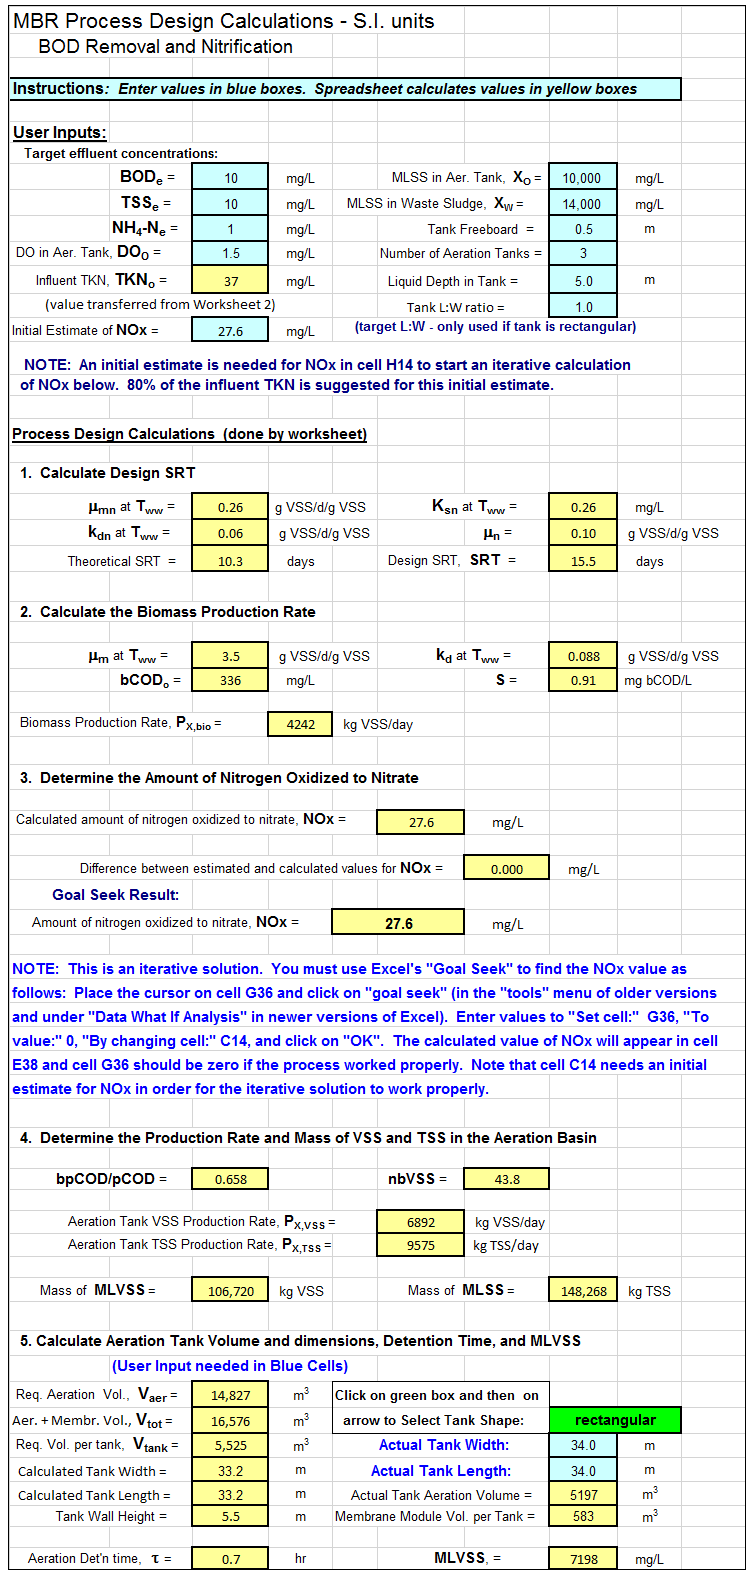 MBR Wastewater Treatment Process Design Spreadsheet Screenshot